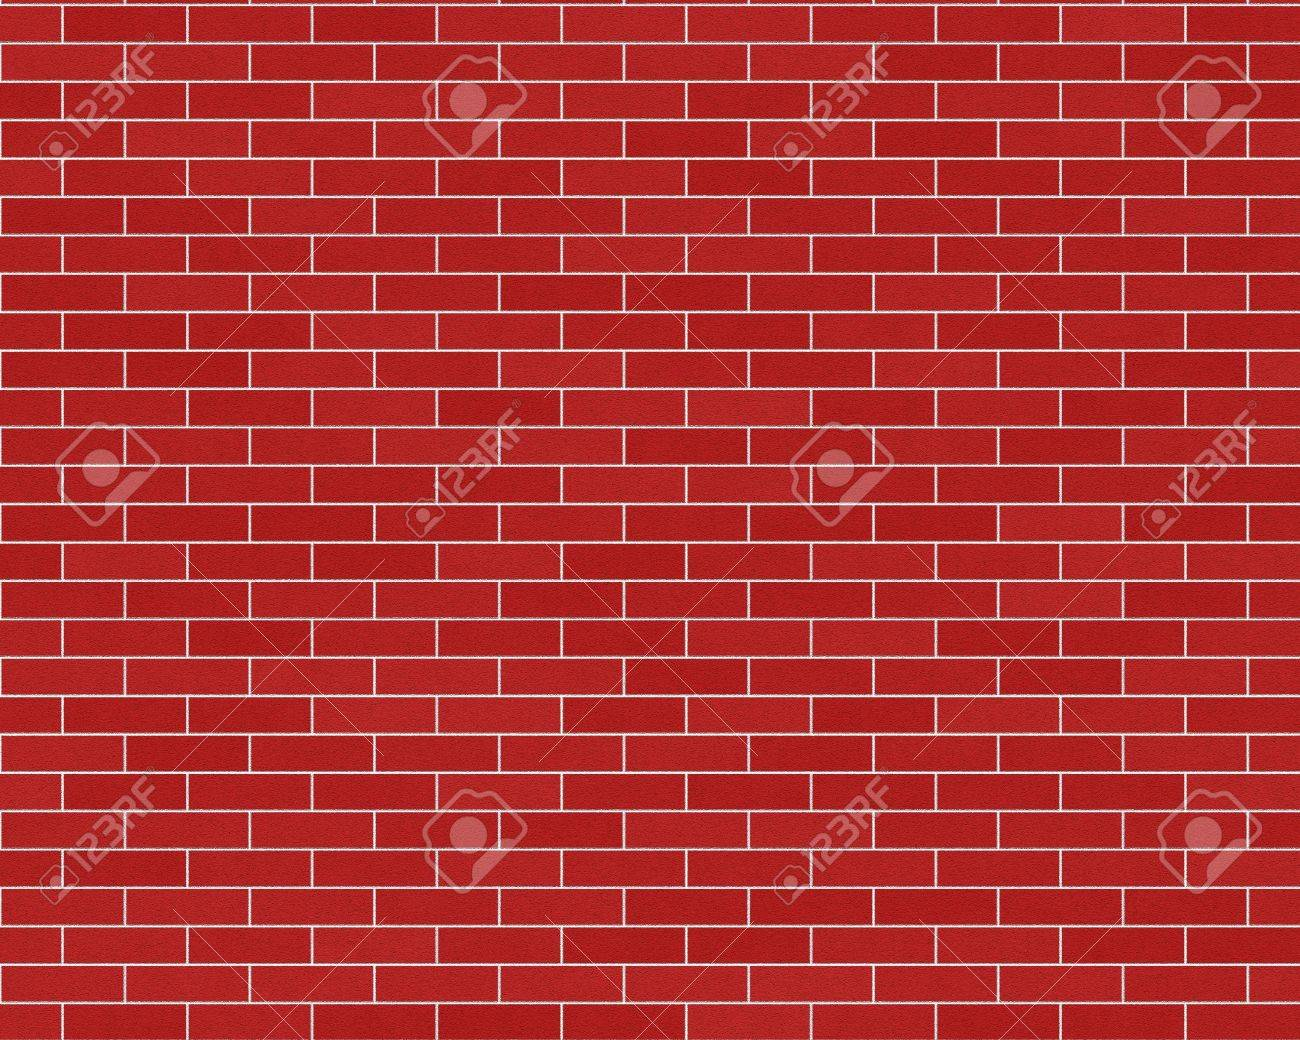 Dark Red Common Brick Wall Background Textured Stock Photo